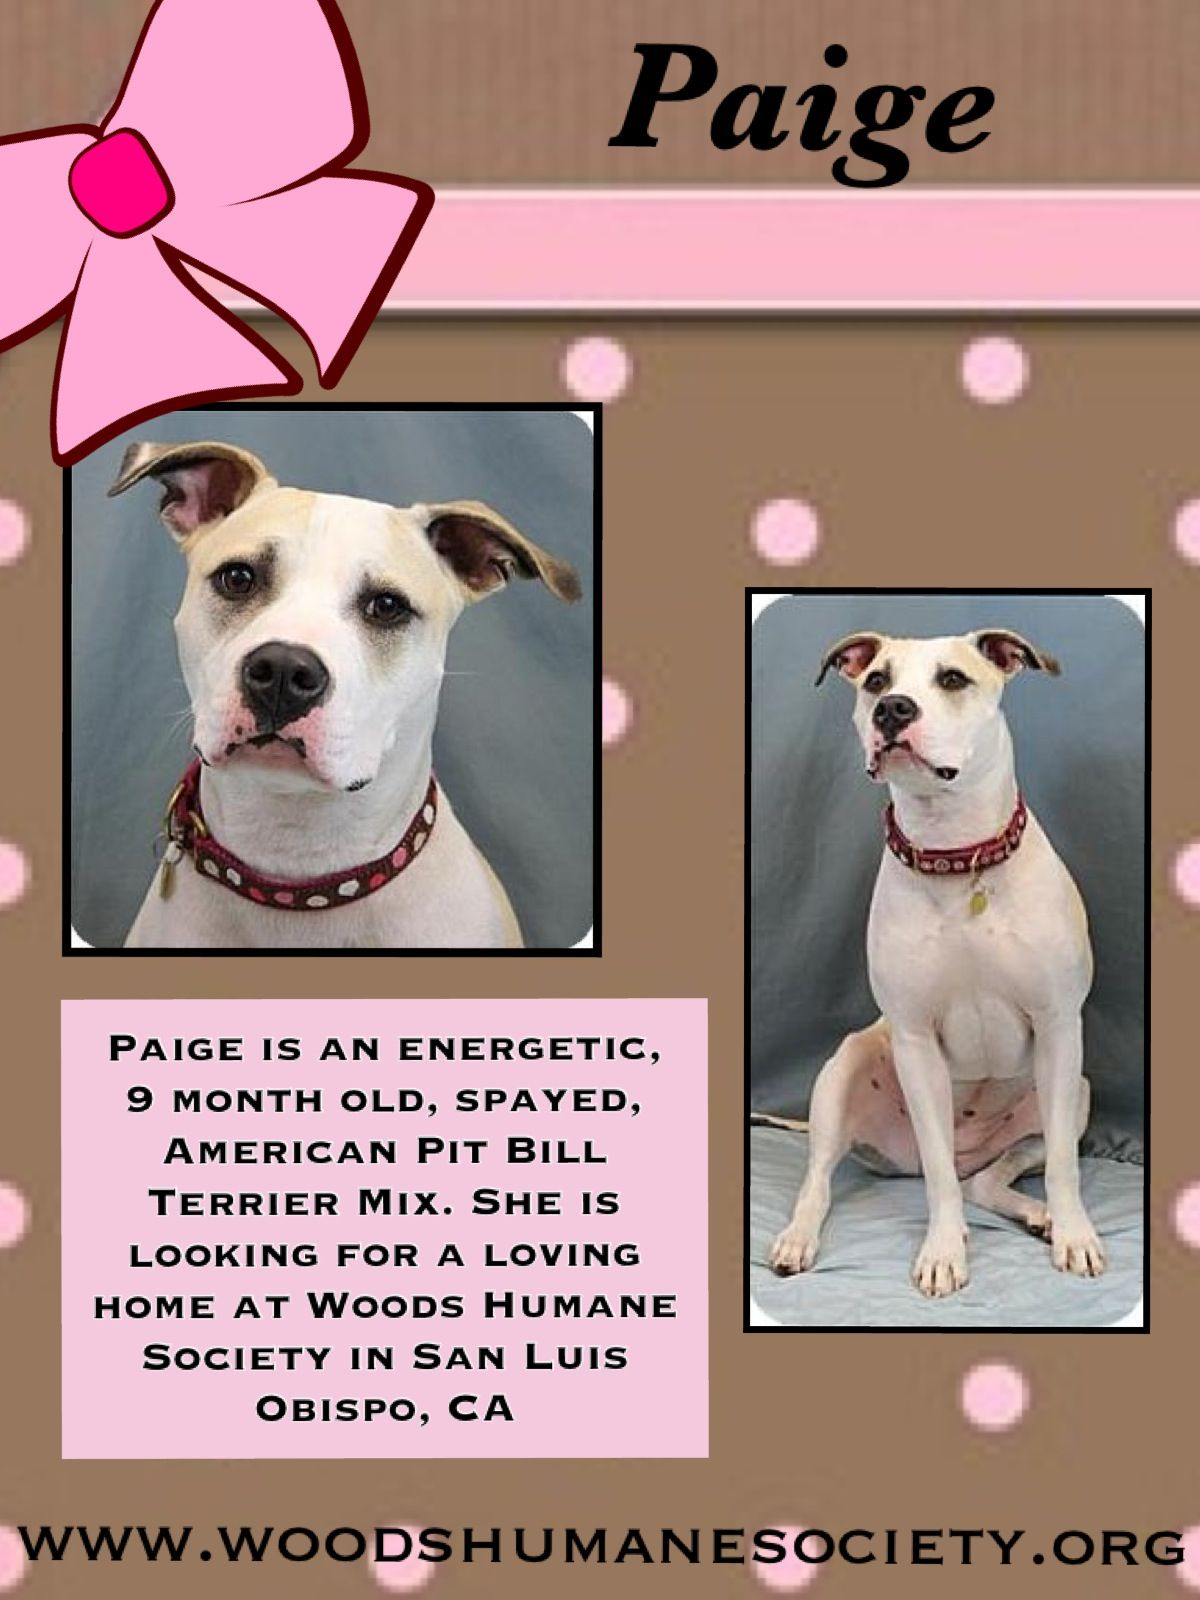 Paige Is Available For Adoption At Woods Humane Society In San